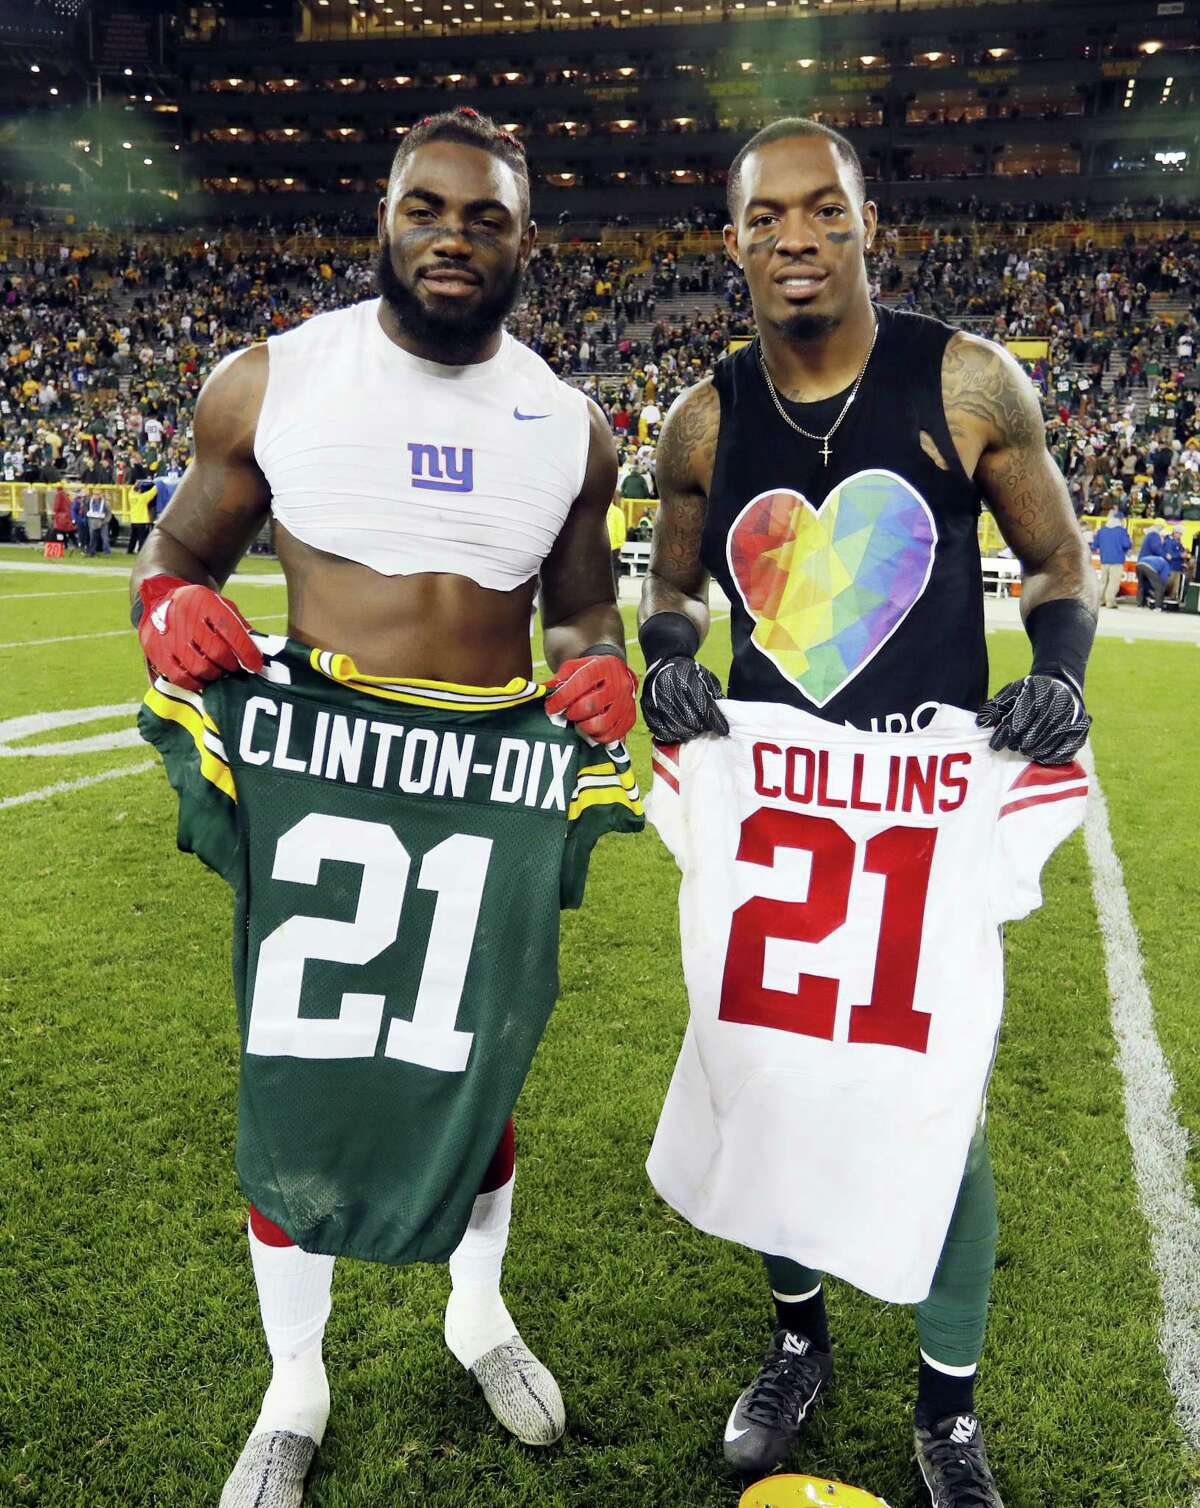 The Giants' Landon Collins, left, and the Packers' Ha Ha Clinton-Dix exchange jerseys after a game in Green Bay, Wis. The Crimson Tide-tinted friendship of Landon Collins and Ha Ha Clinton-Dix will be tested on Sunday at Lambeau Field.